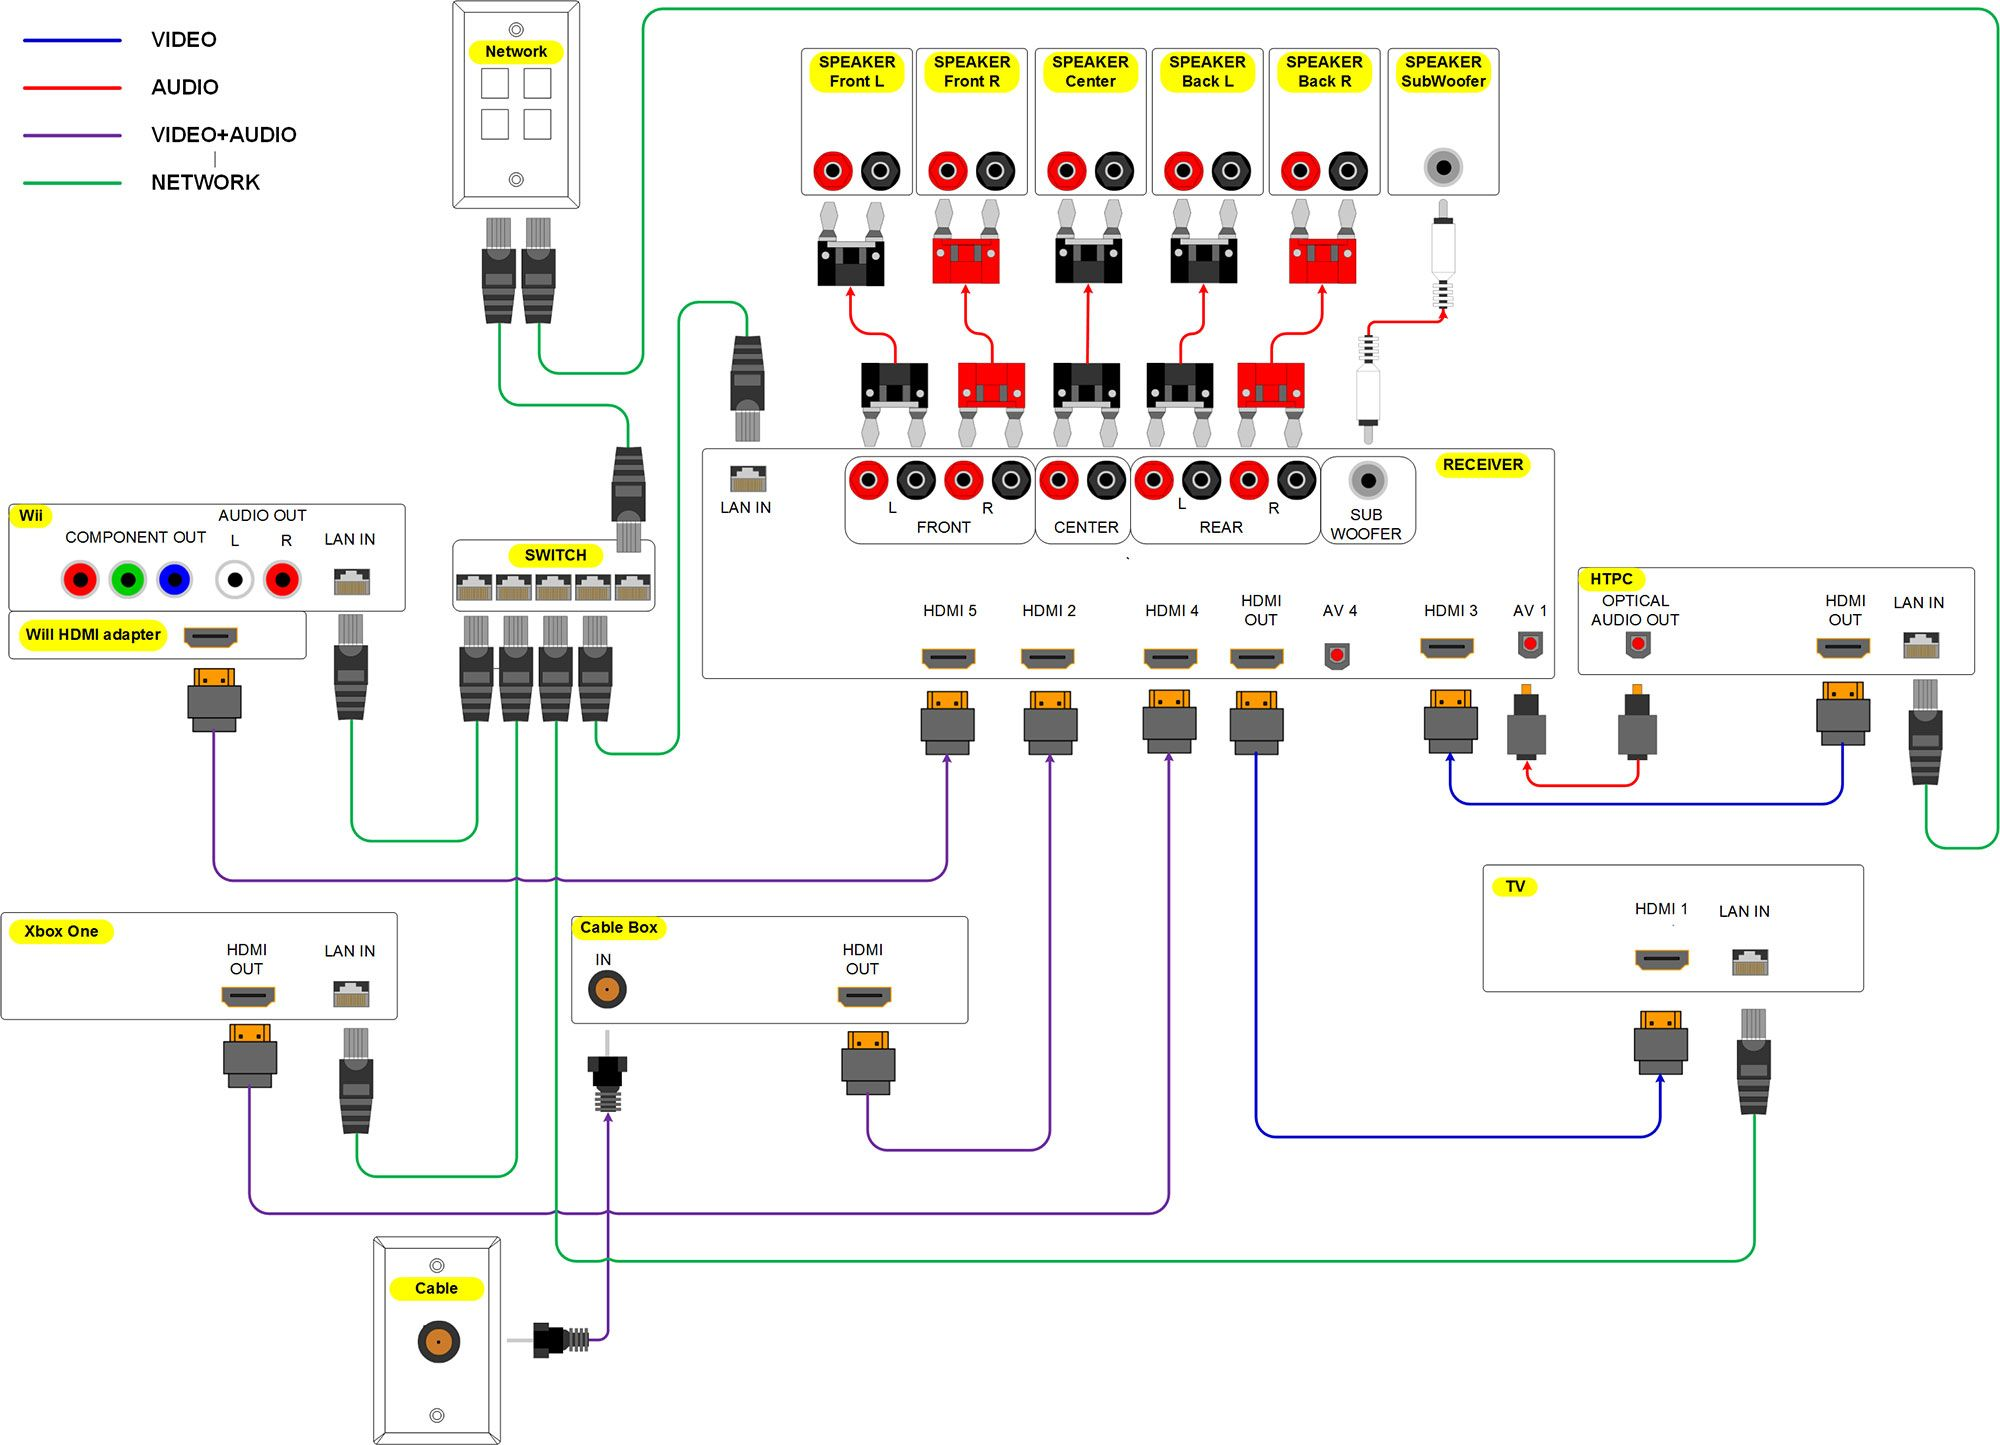 ae3ef715ed5d6ac384ec9c2b84075aef home theater wiring diagram (click it to see the big 2000 pixel home theater speaker wiring diagrams at fashall.co